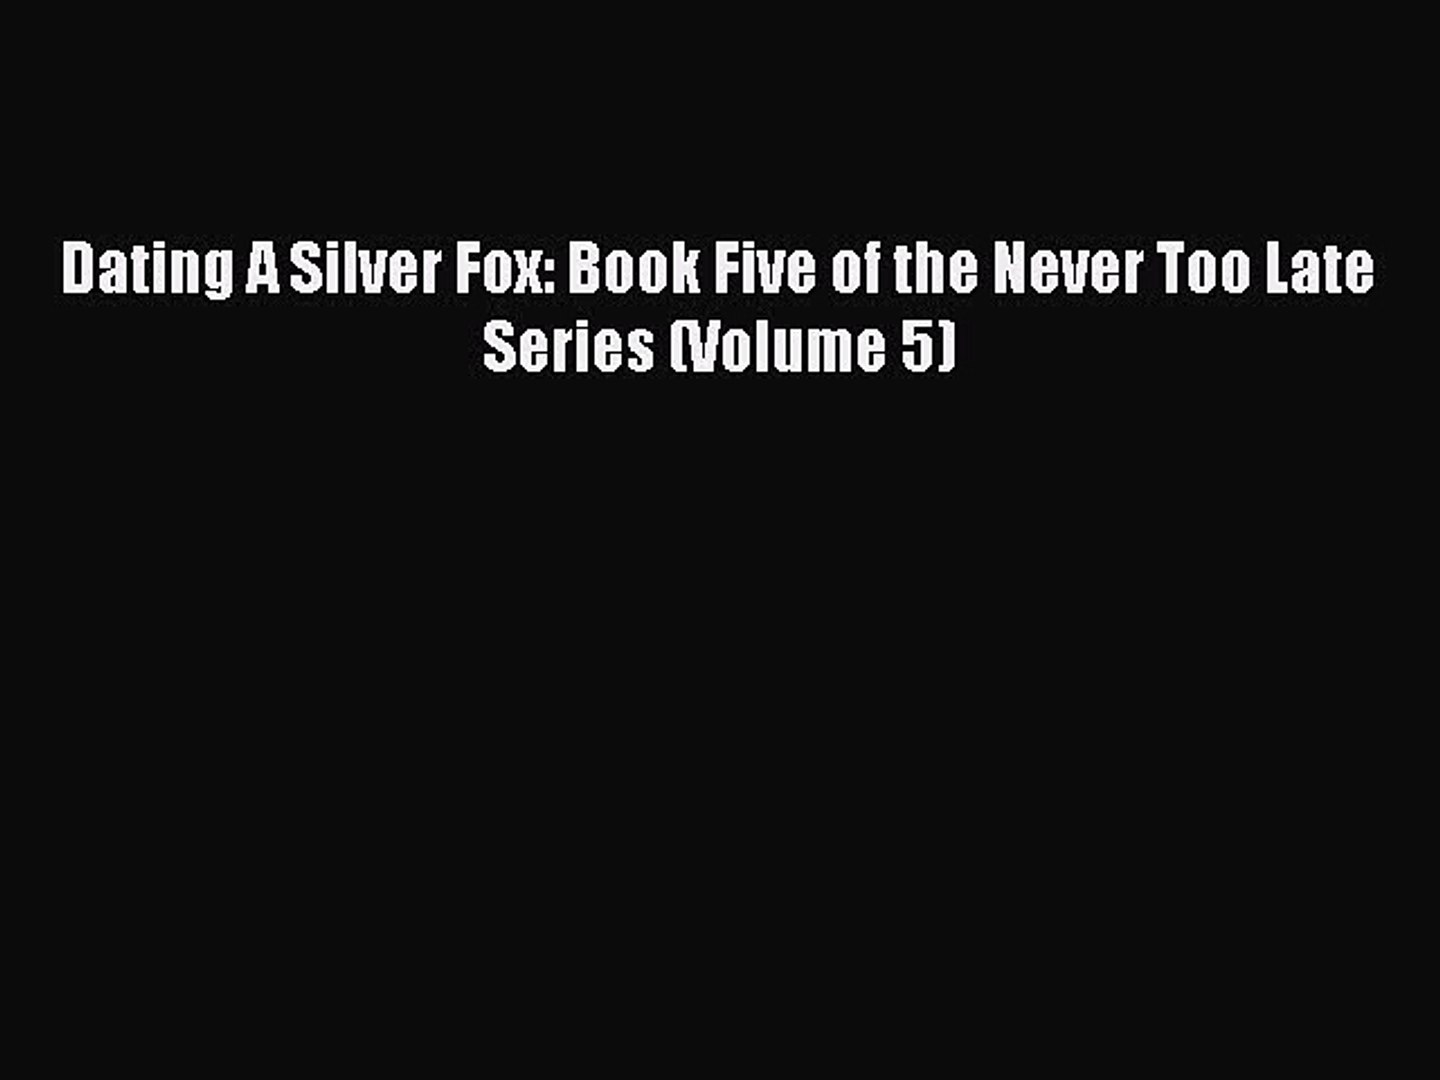 Download Dating A Silver Fox: Book Five of the Never Too Late Series (Volume 5) Ebook Free